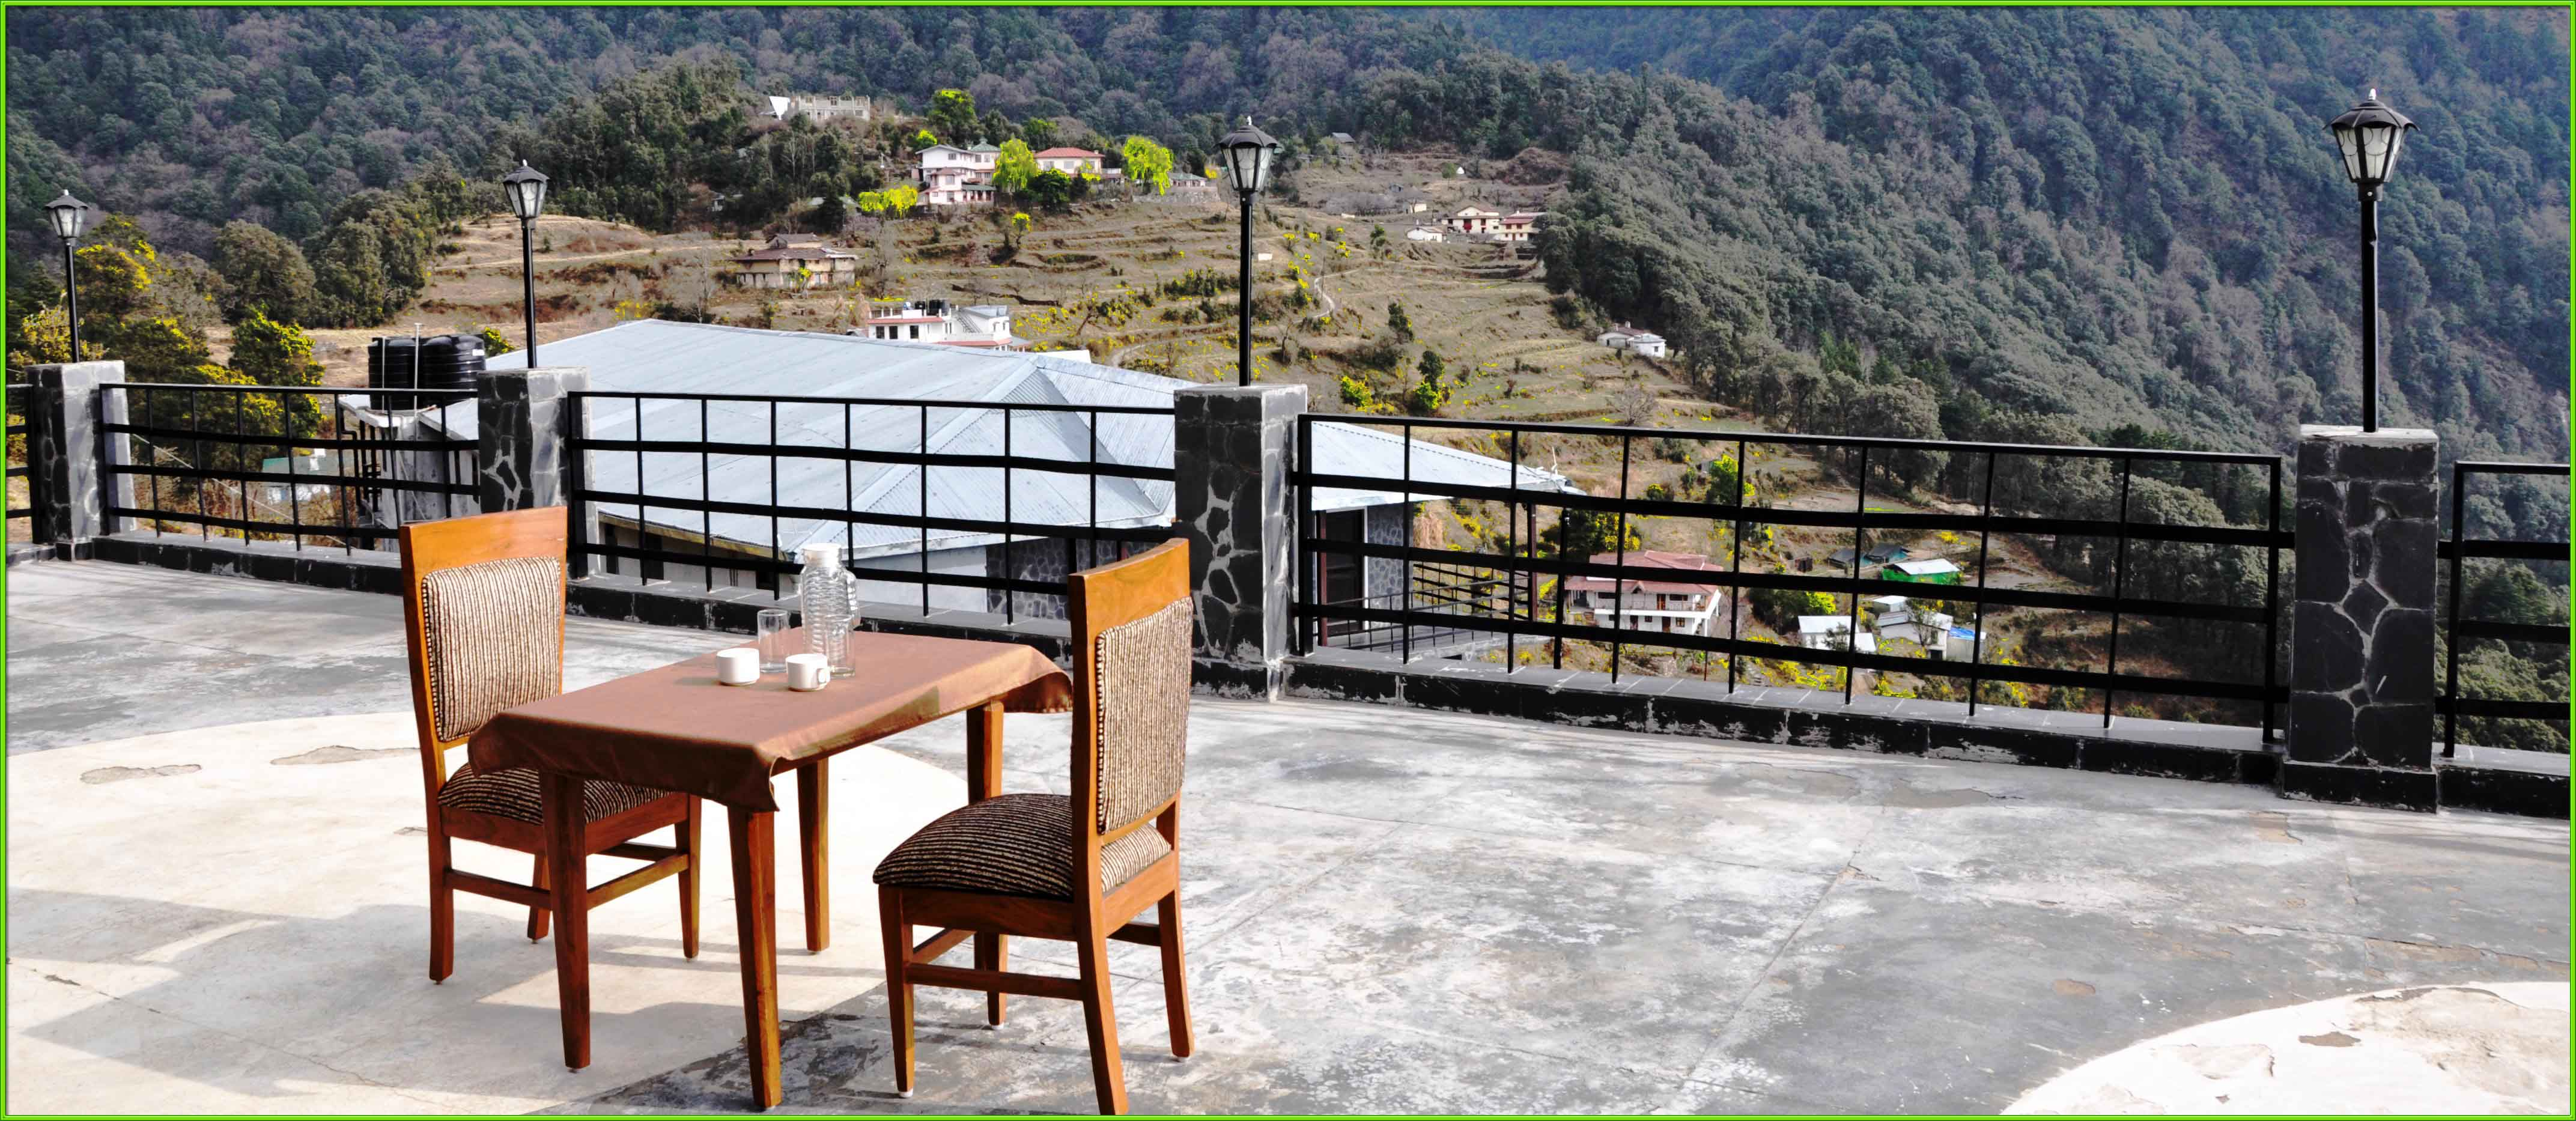 Best Family Resorts in nainital with deluxe and luxury amenities in your pocket budget